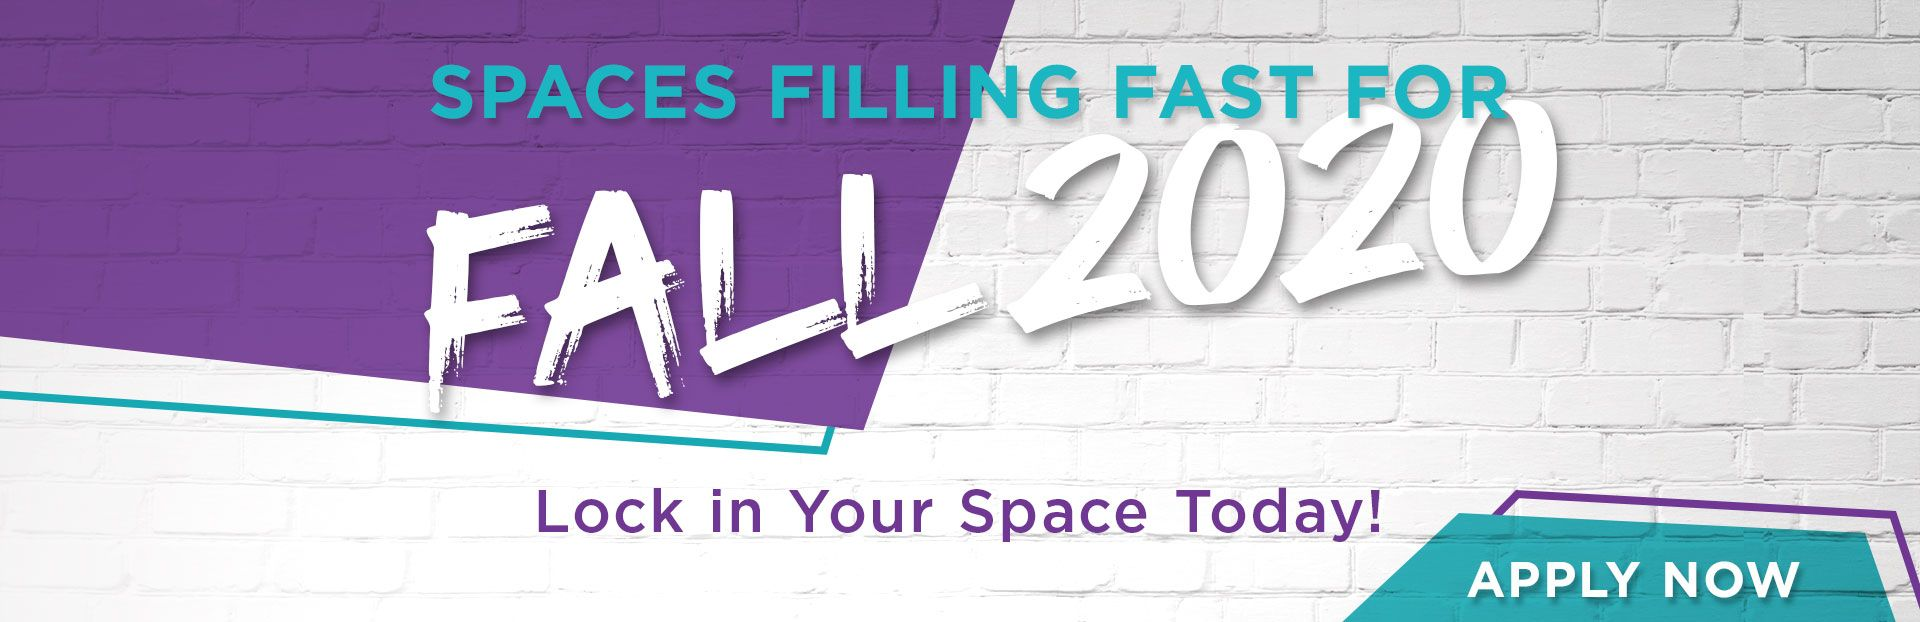 Spaces Filling Fast for Fall 2020. Lock in Your Space Today! | Apply Now